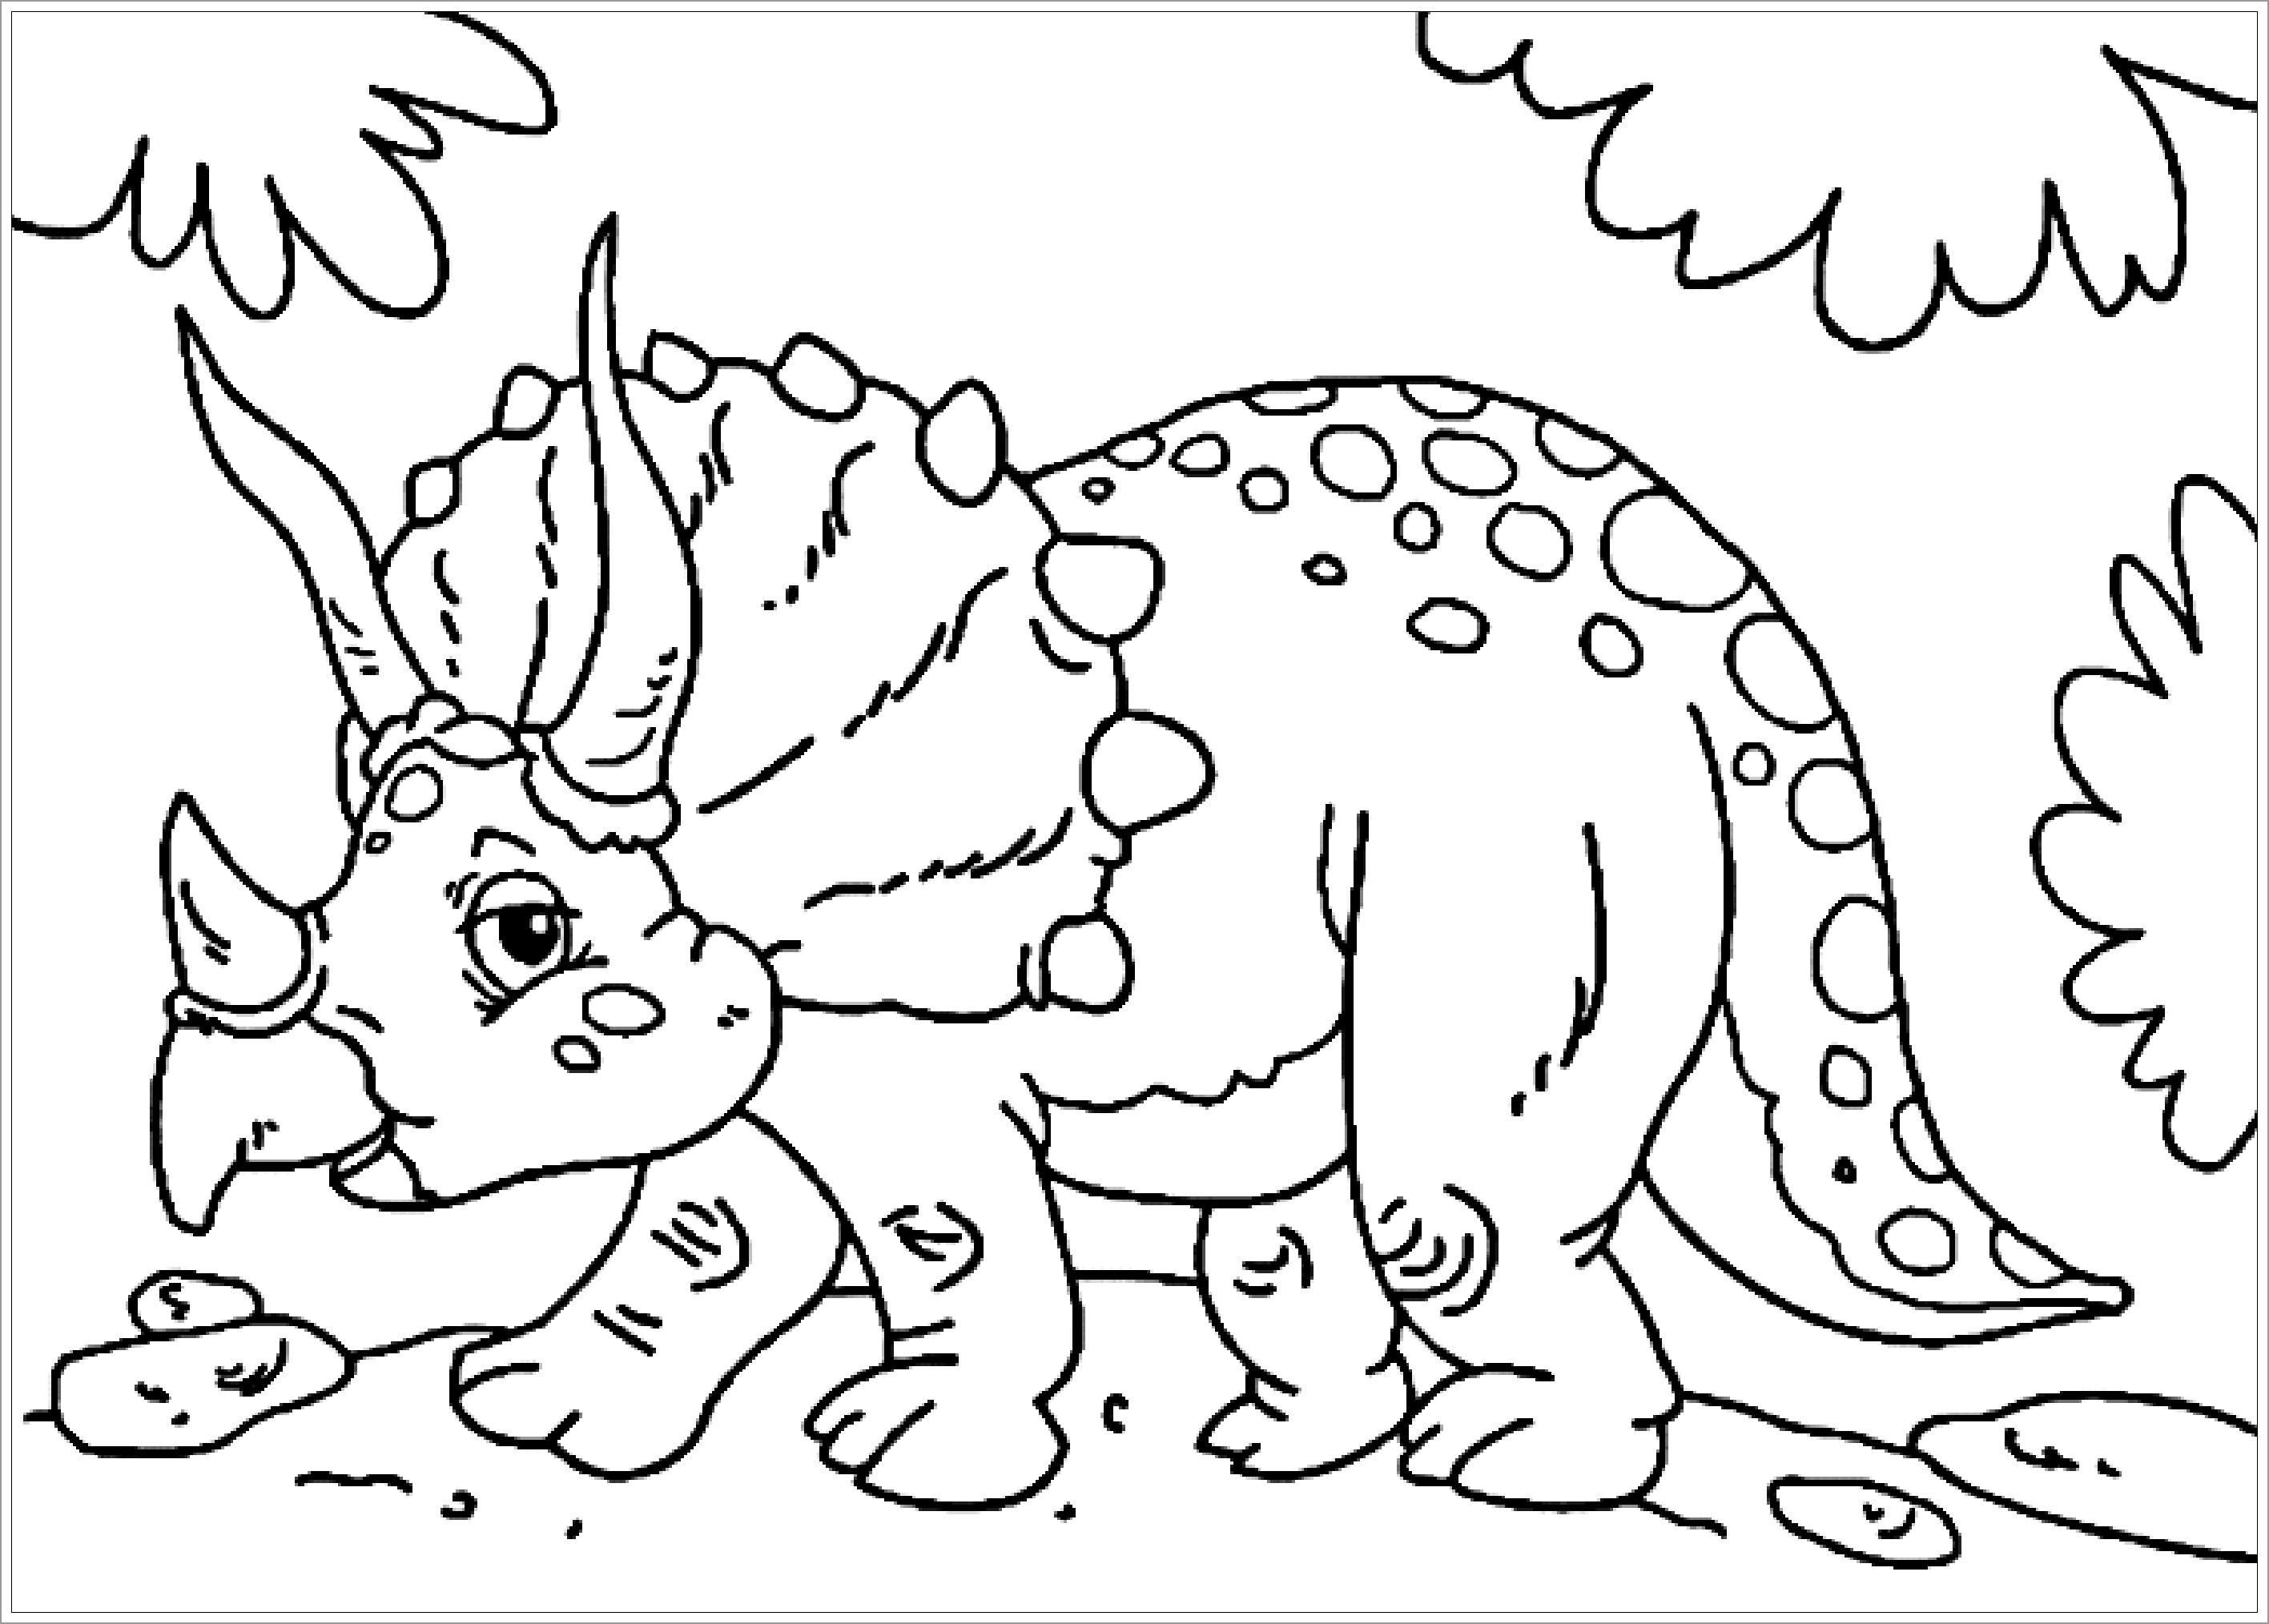 Triceratops Dinosaurs Coloring Page